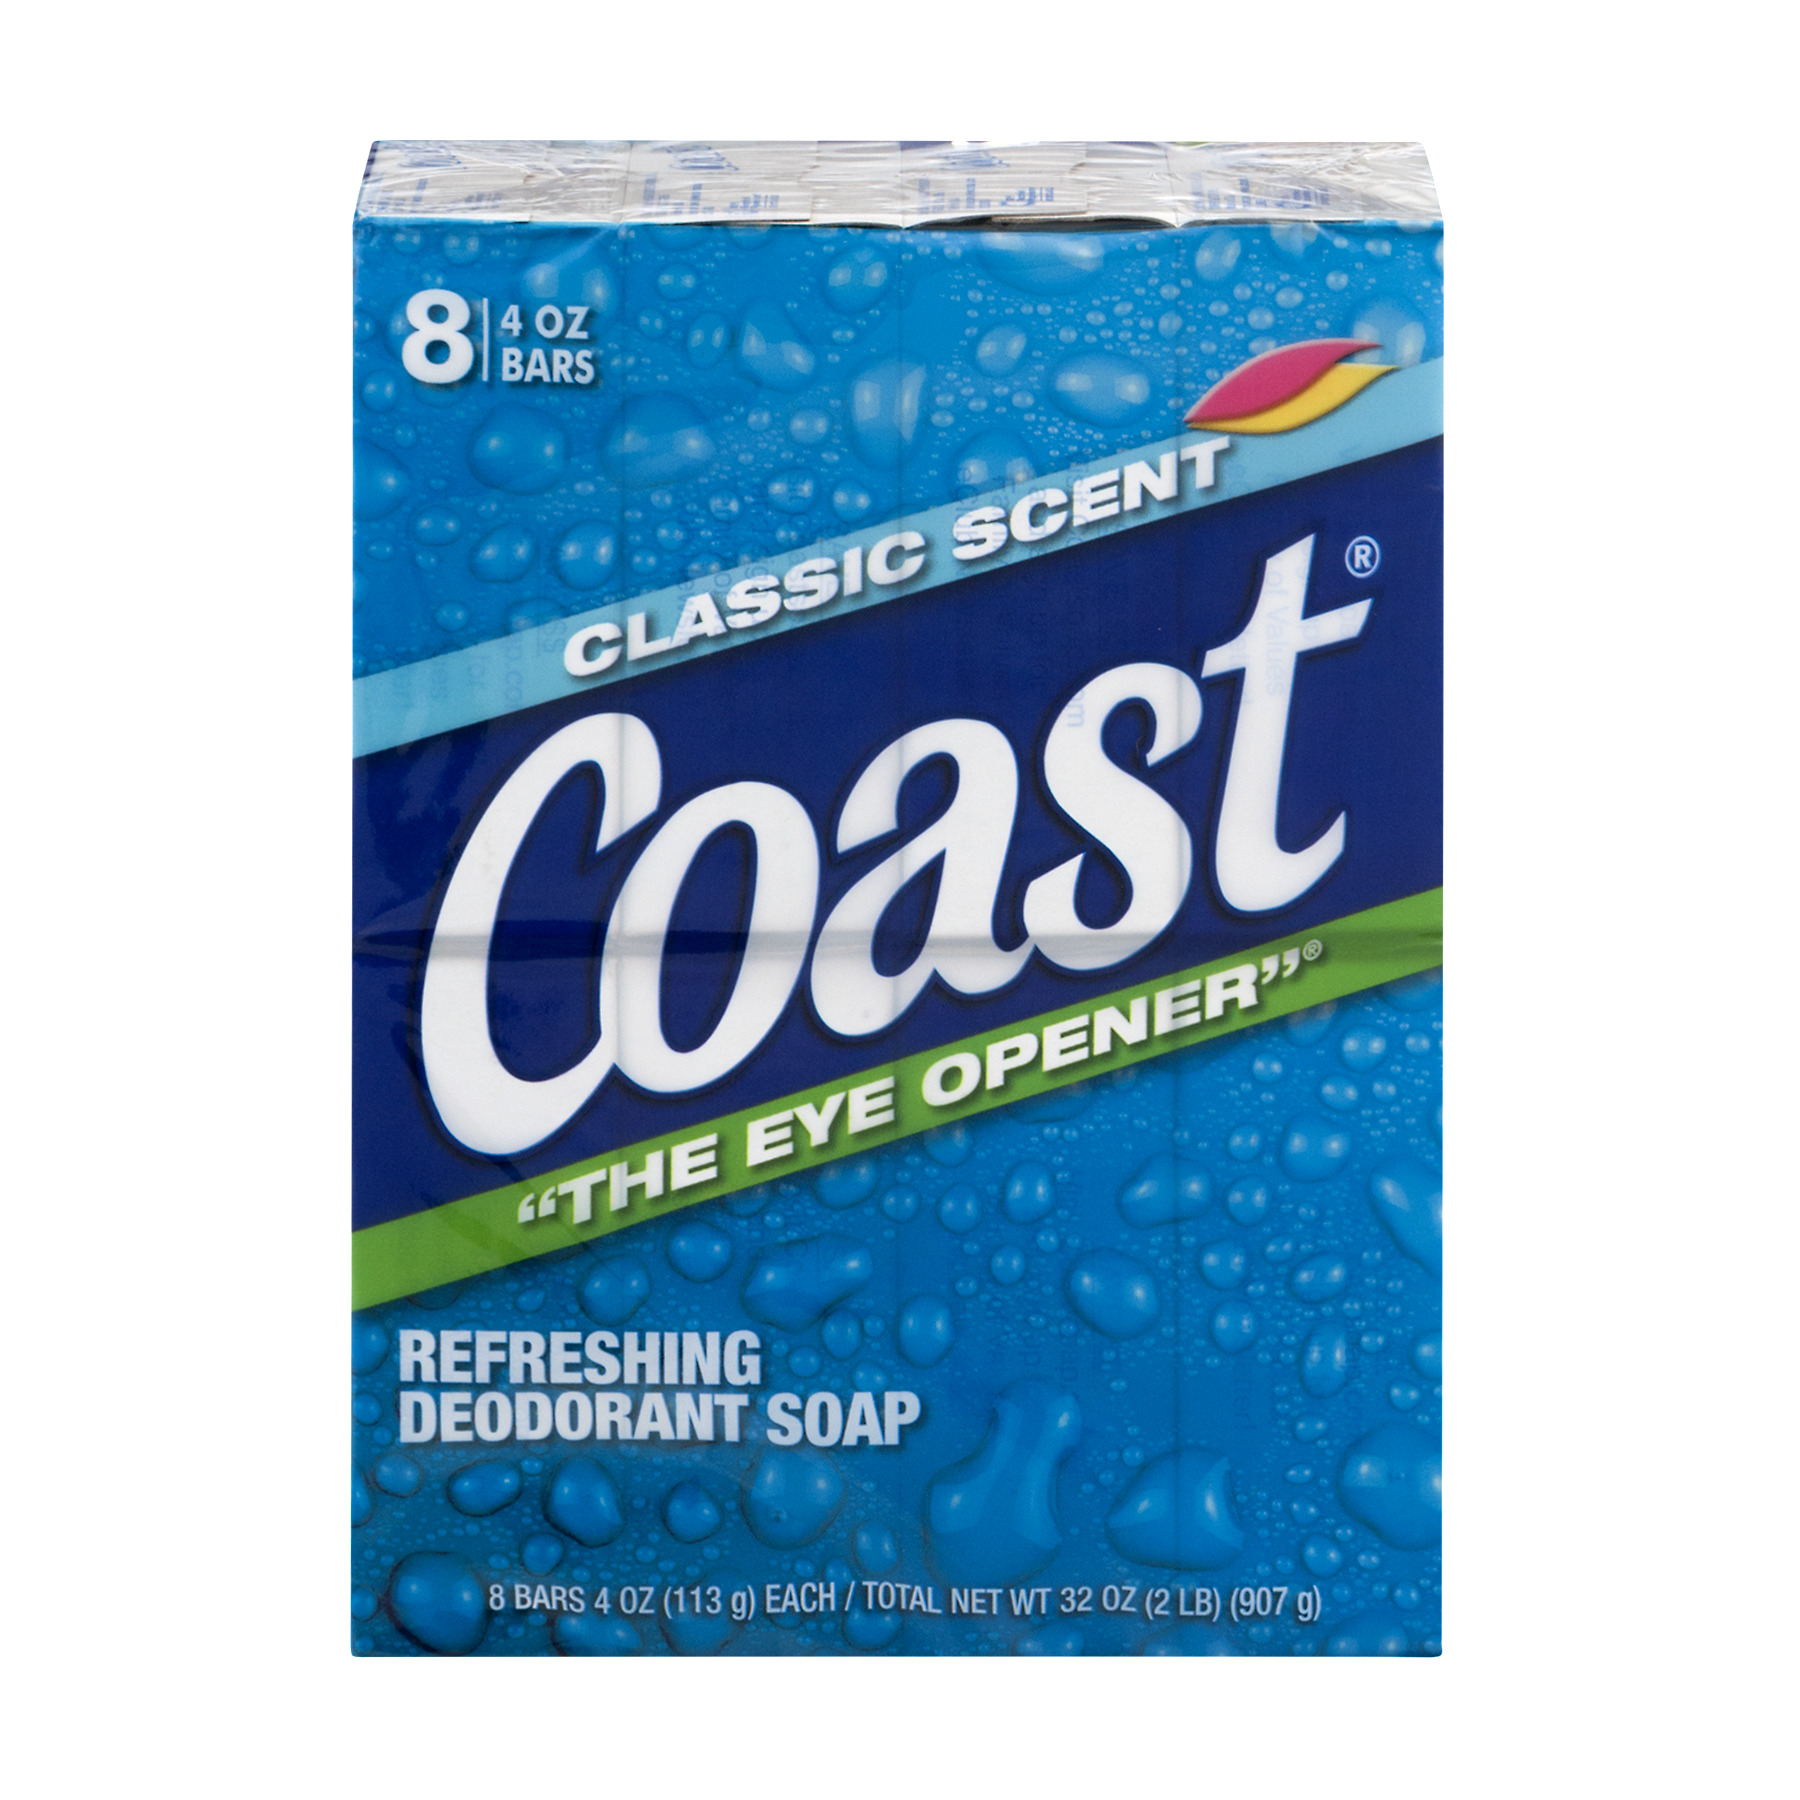 Coast Refreshing Deodorant Soap Classic Scent - 8 CT4.0 OZ